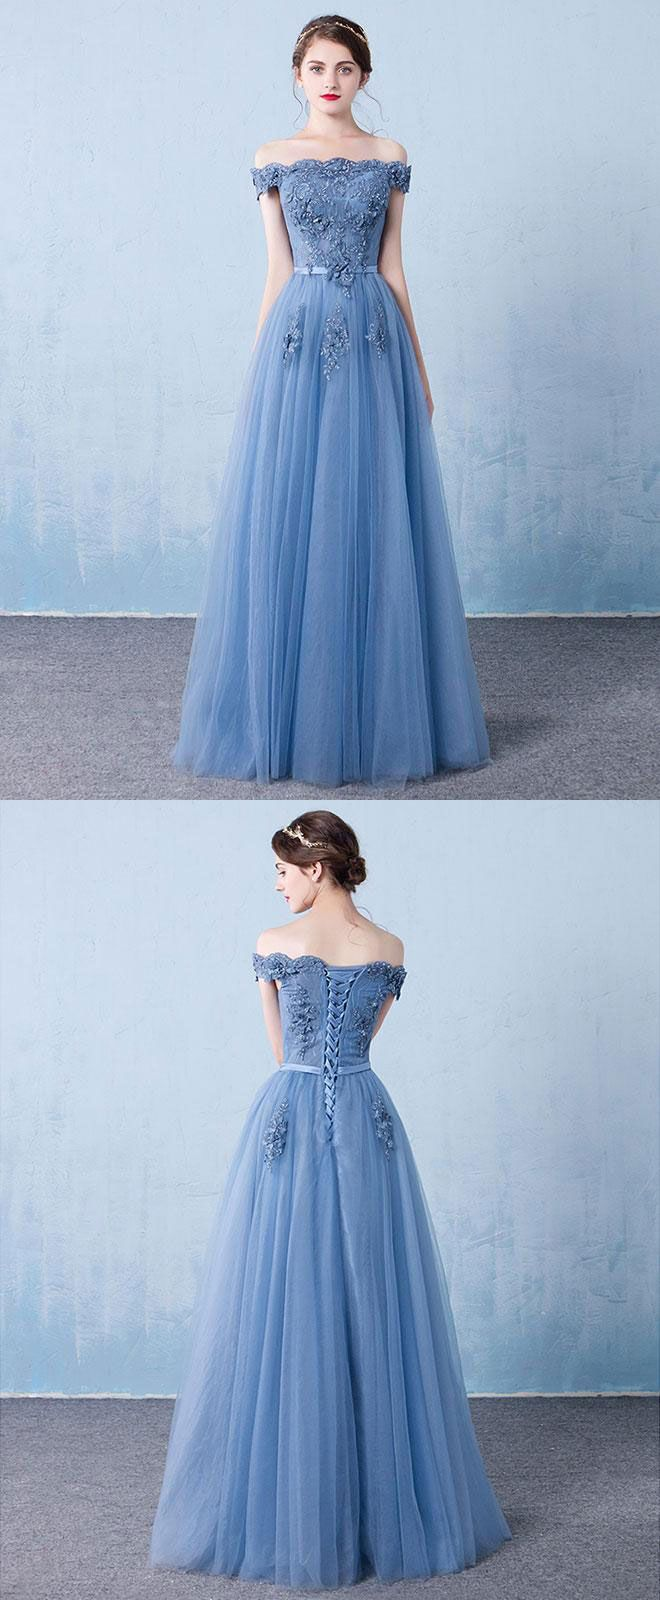 Blue tulle lace off shoulder long prom dress bridesmaid dress